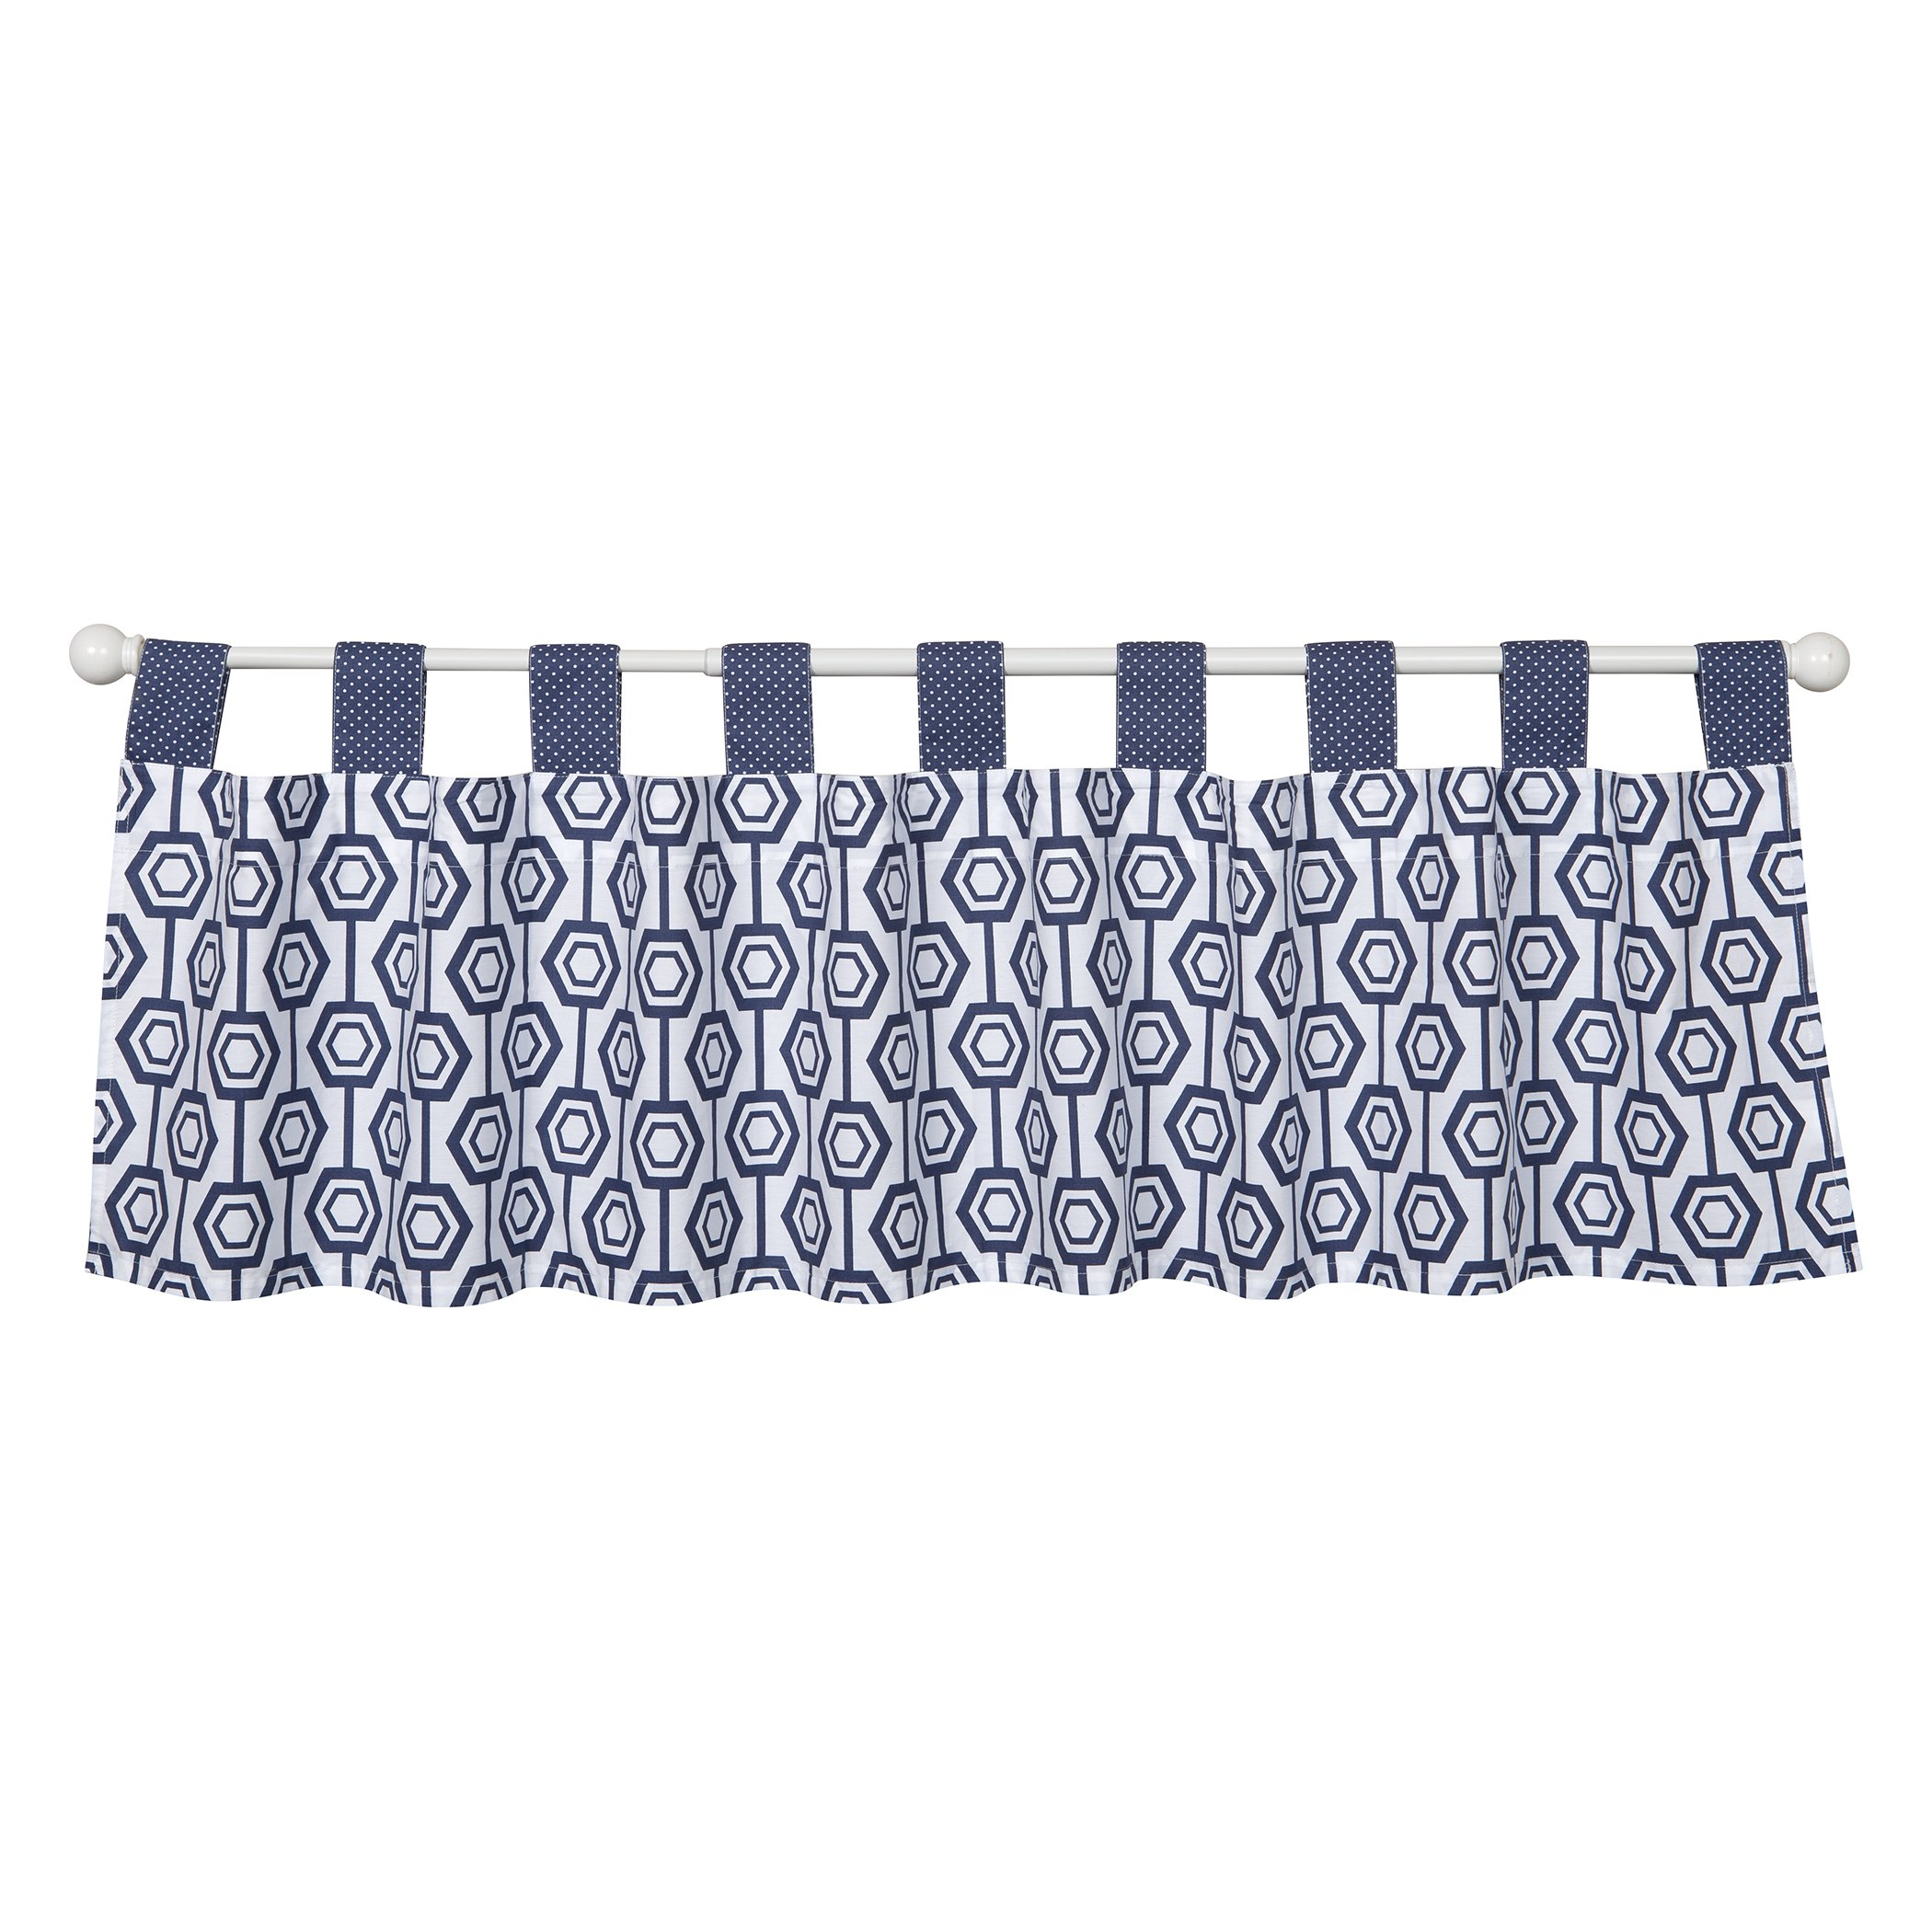 navy greek shipping valances valance white today free shaped key garden m home and product pattern overstock